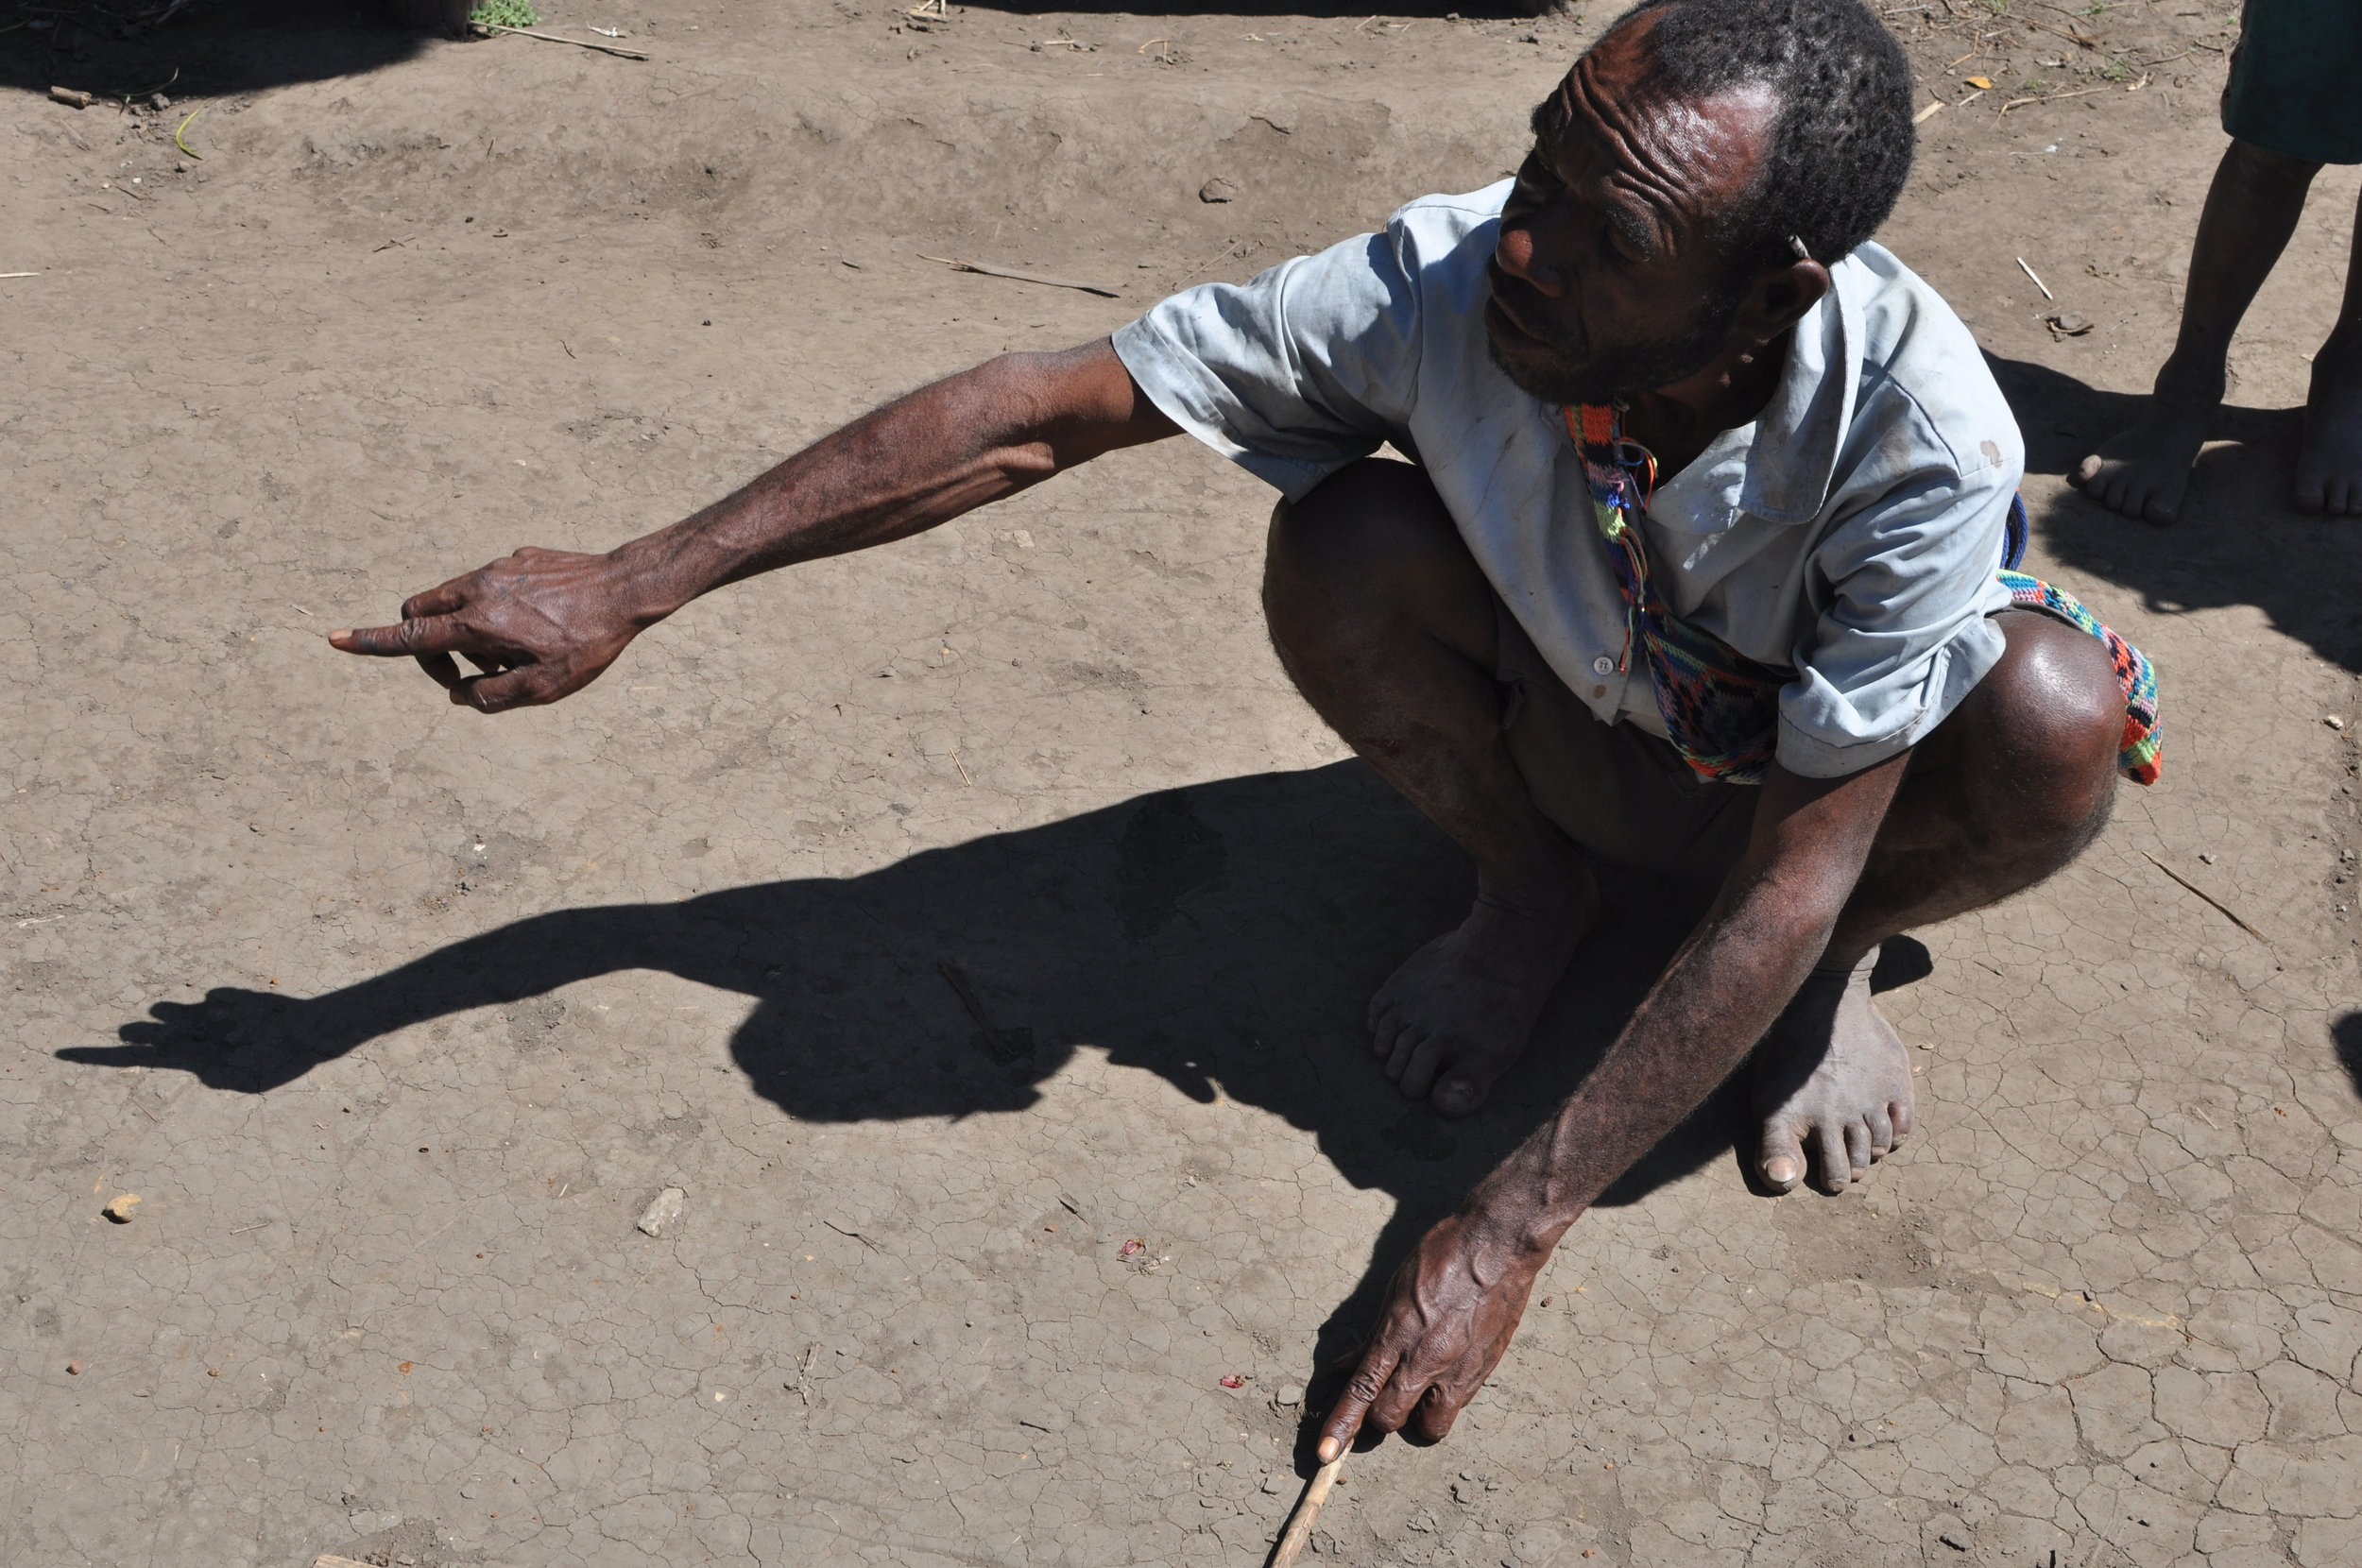 A man explains a timeline of Yupno history, recently scratched into the dirt. Gua, 2009.